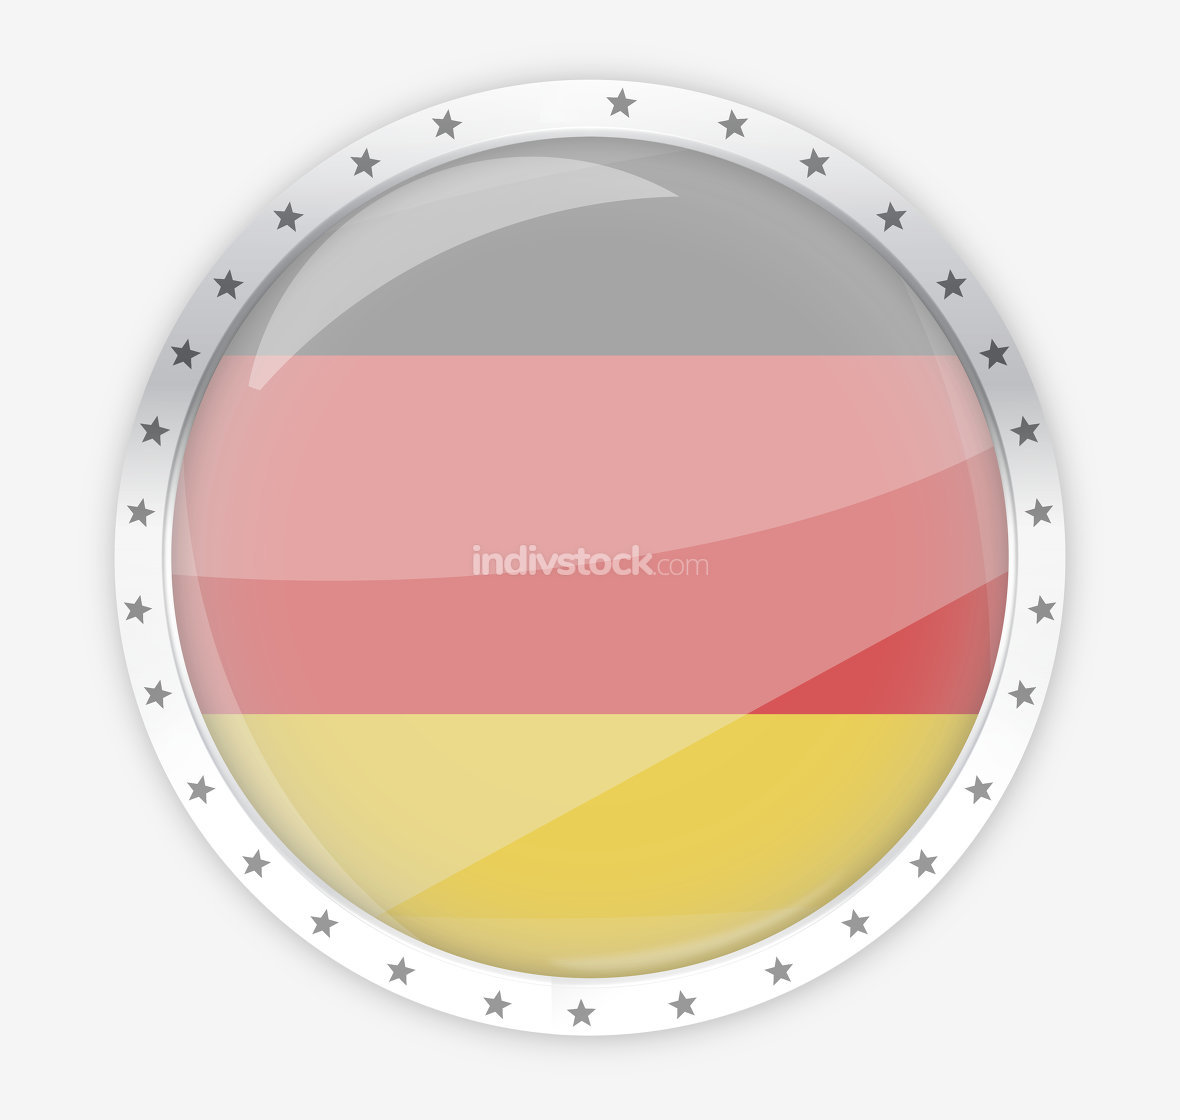 germany round opacity button icon 3d render graphic isolated